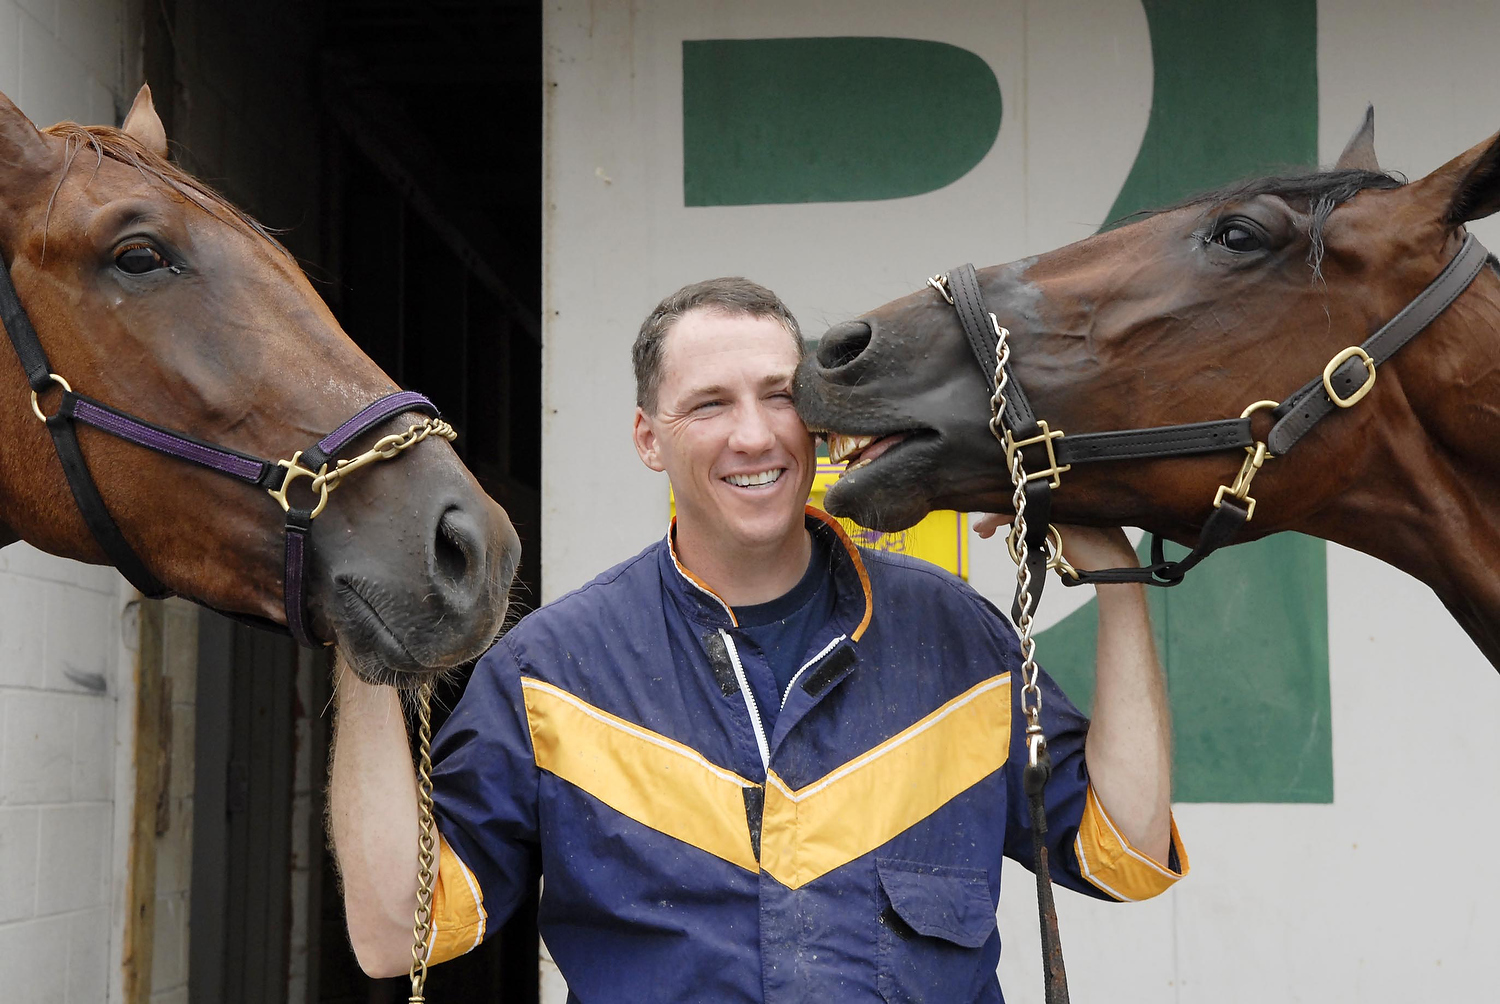 Horse trainer John McDermott,  with Real Mean Art, left, and Load the Dice, two horses he trains at the Meadowlands Racetrack. {quote}I grew up so close to this place, I feel like it's home,{quote} said McDermott, a former police officer-turned successful horse trainer. (Reena Rose Sibayan | The Jersey Journal)